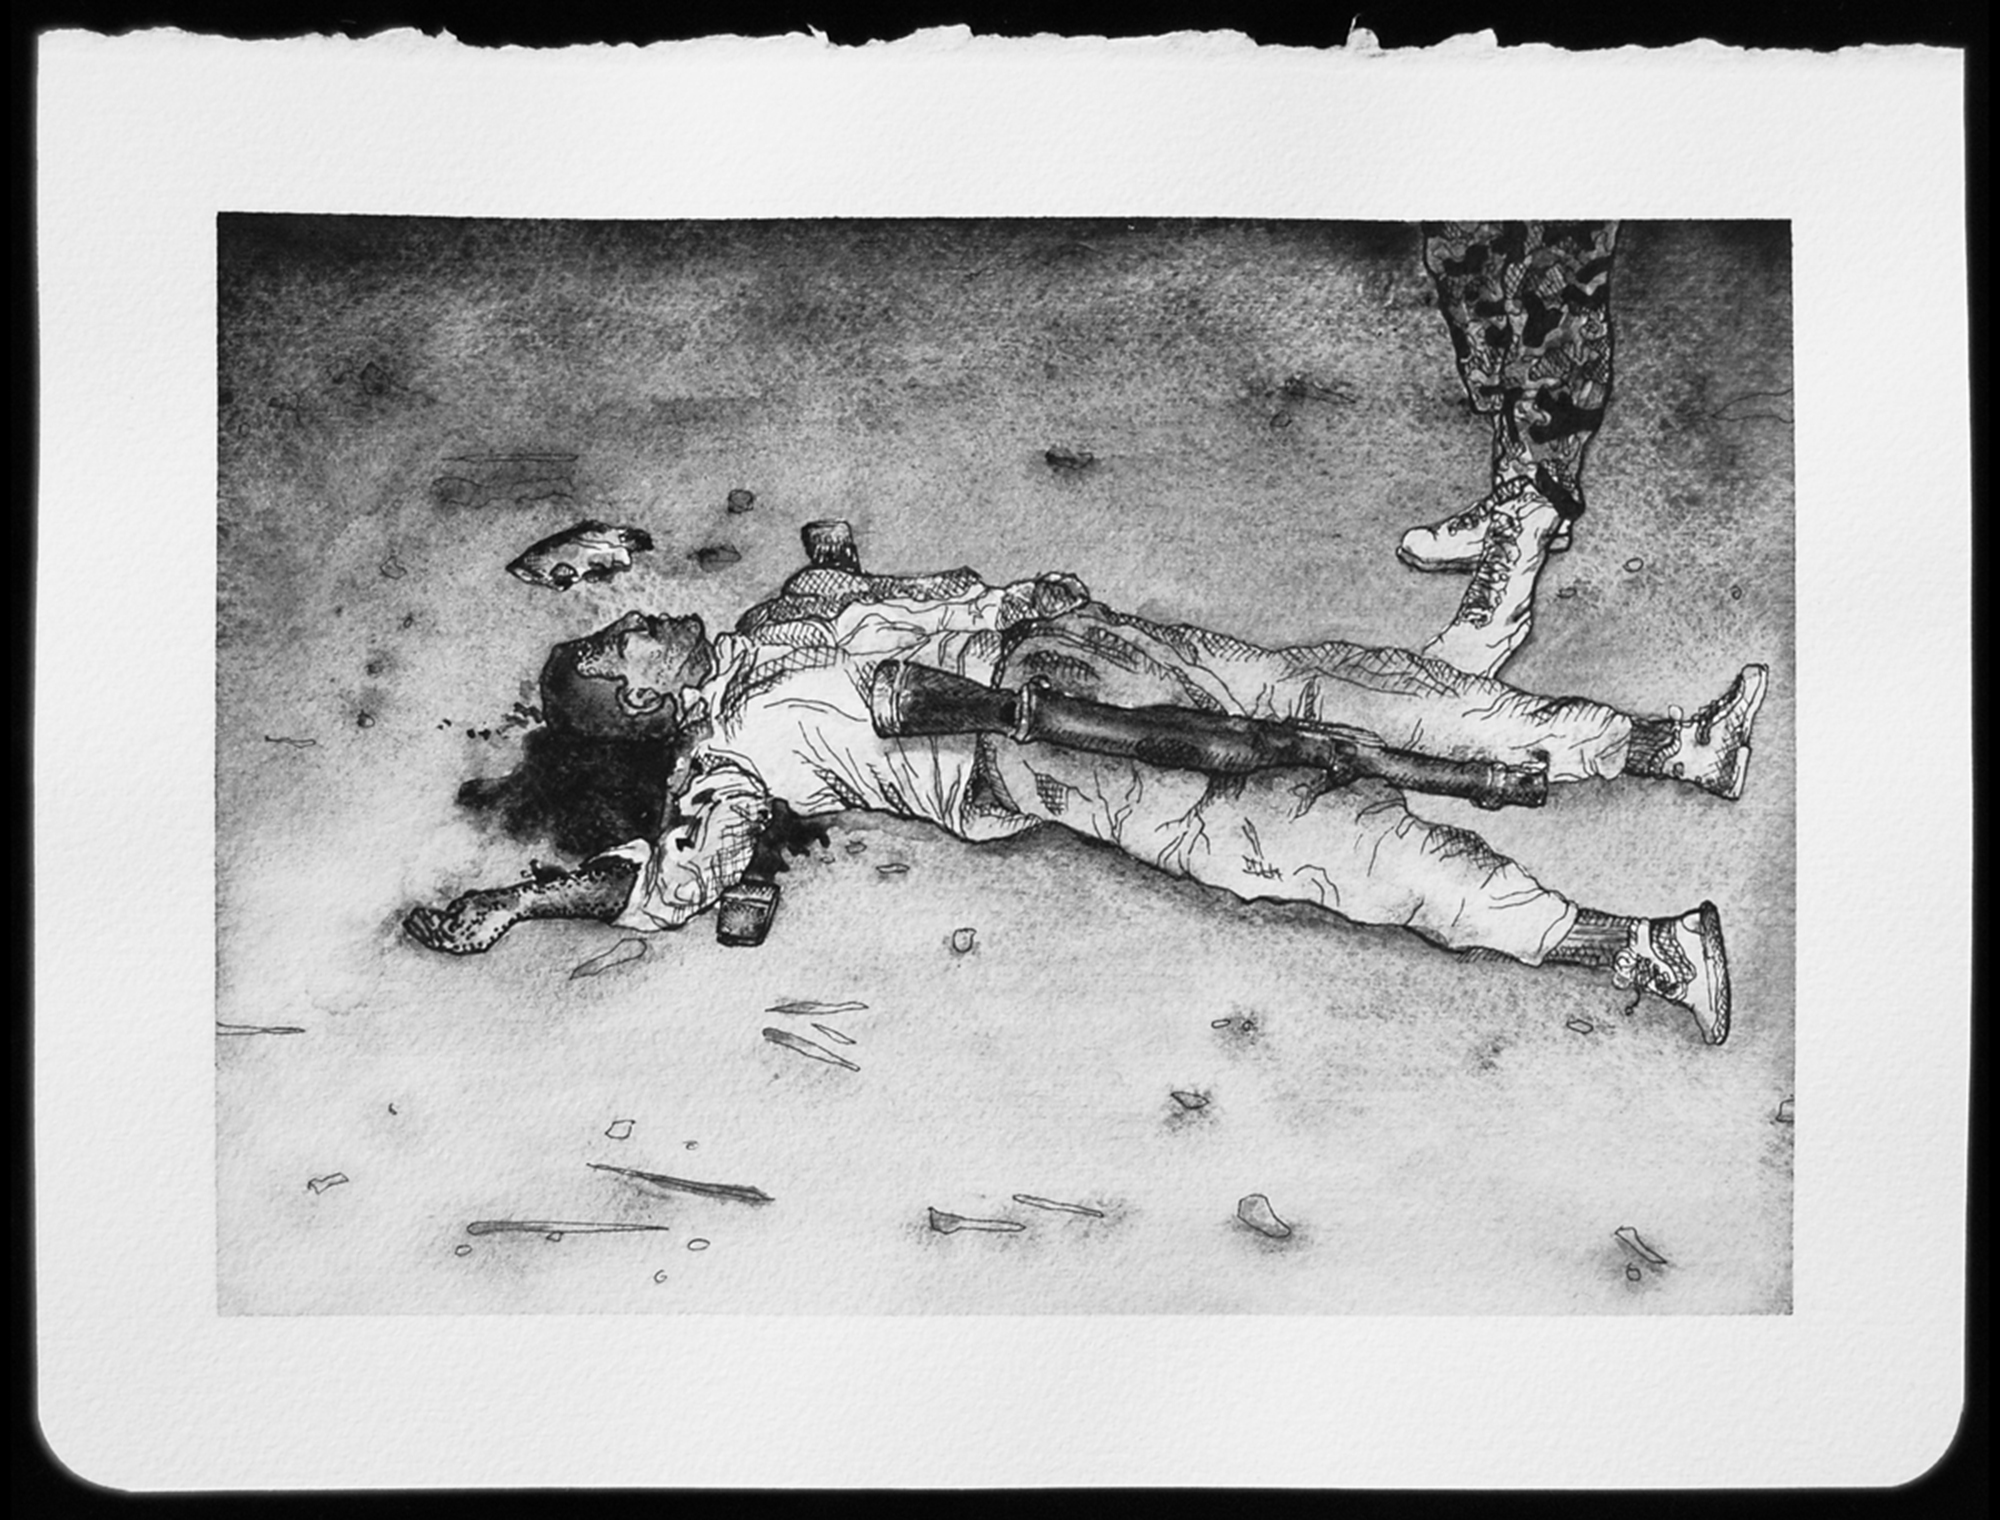 DEATH_089.jpg,2010  |  8.25 x 11 inches  |  archival ink and gouache on paper